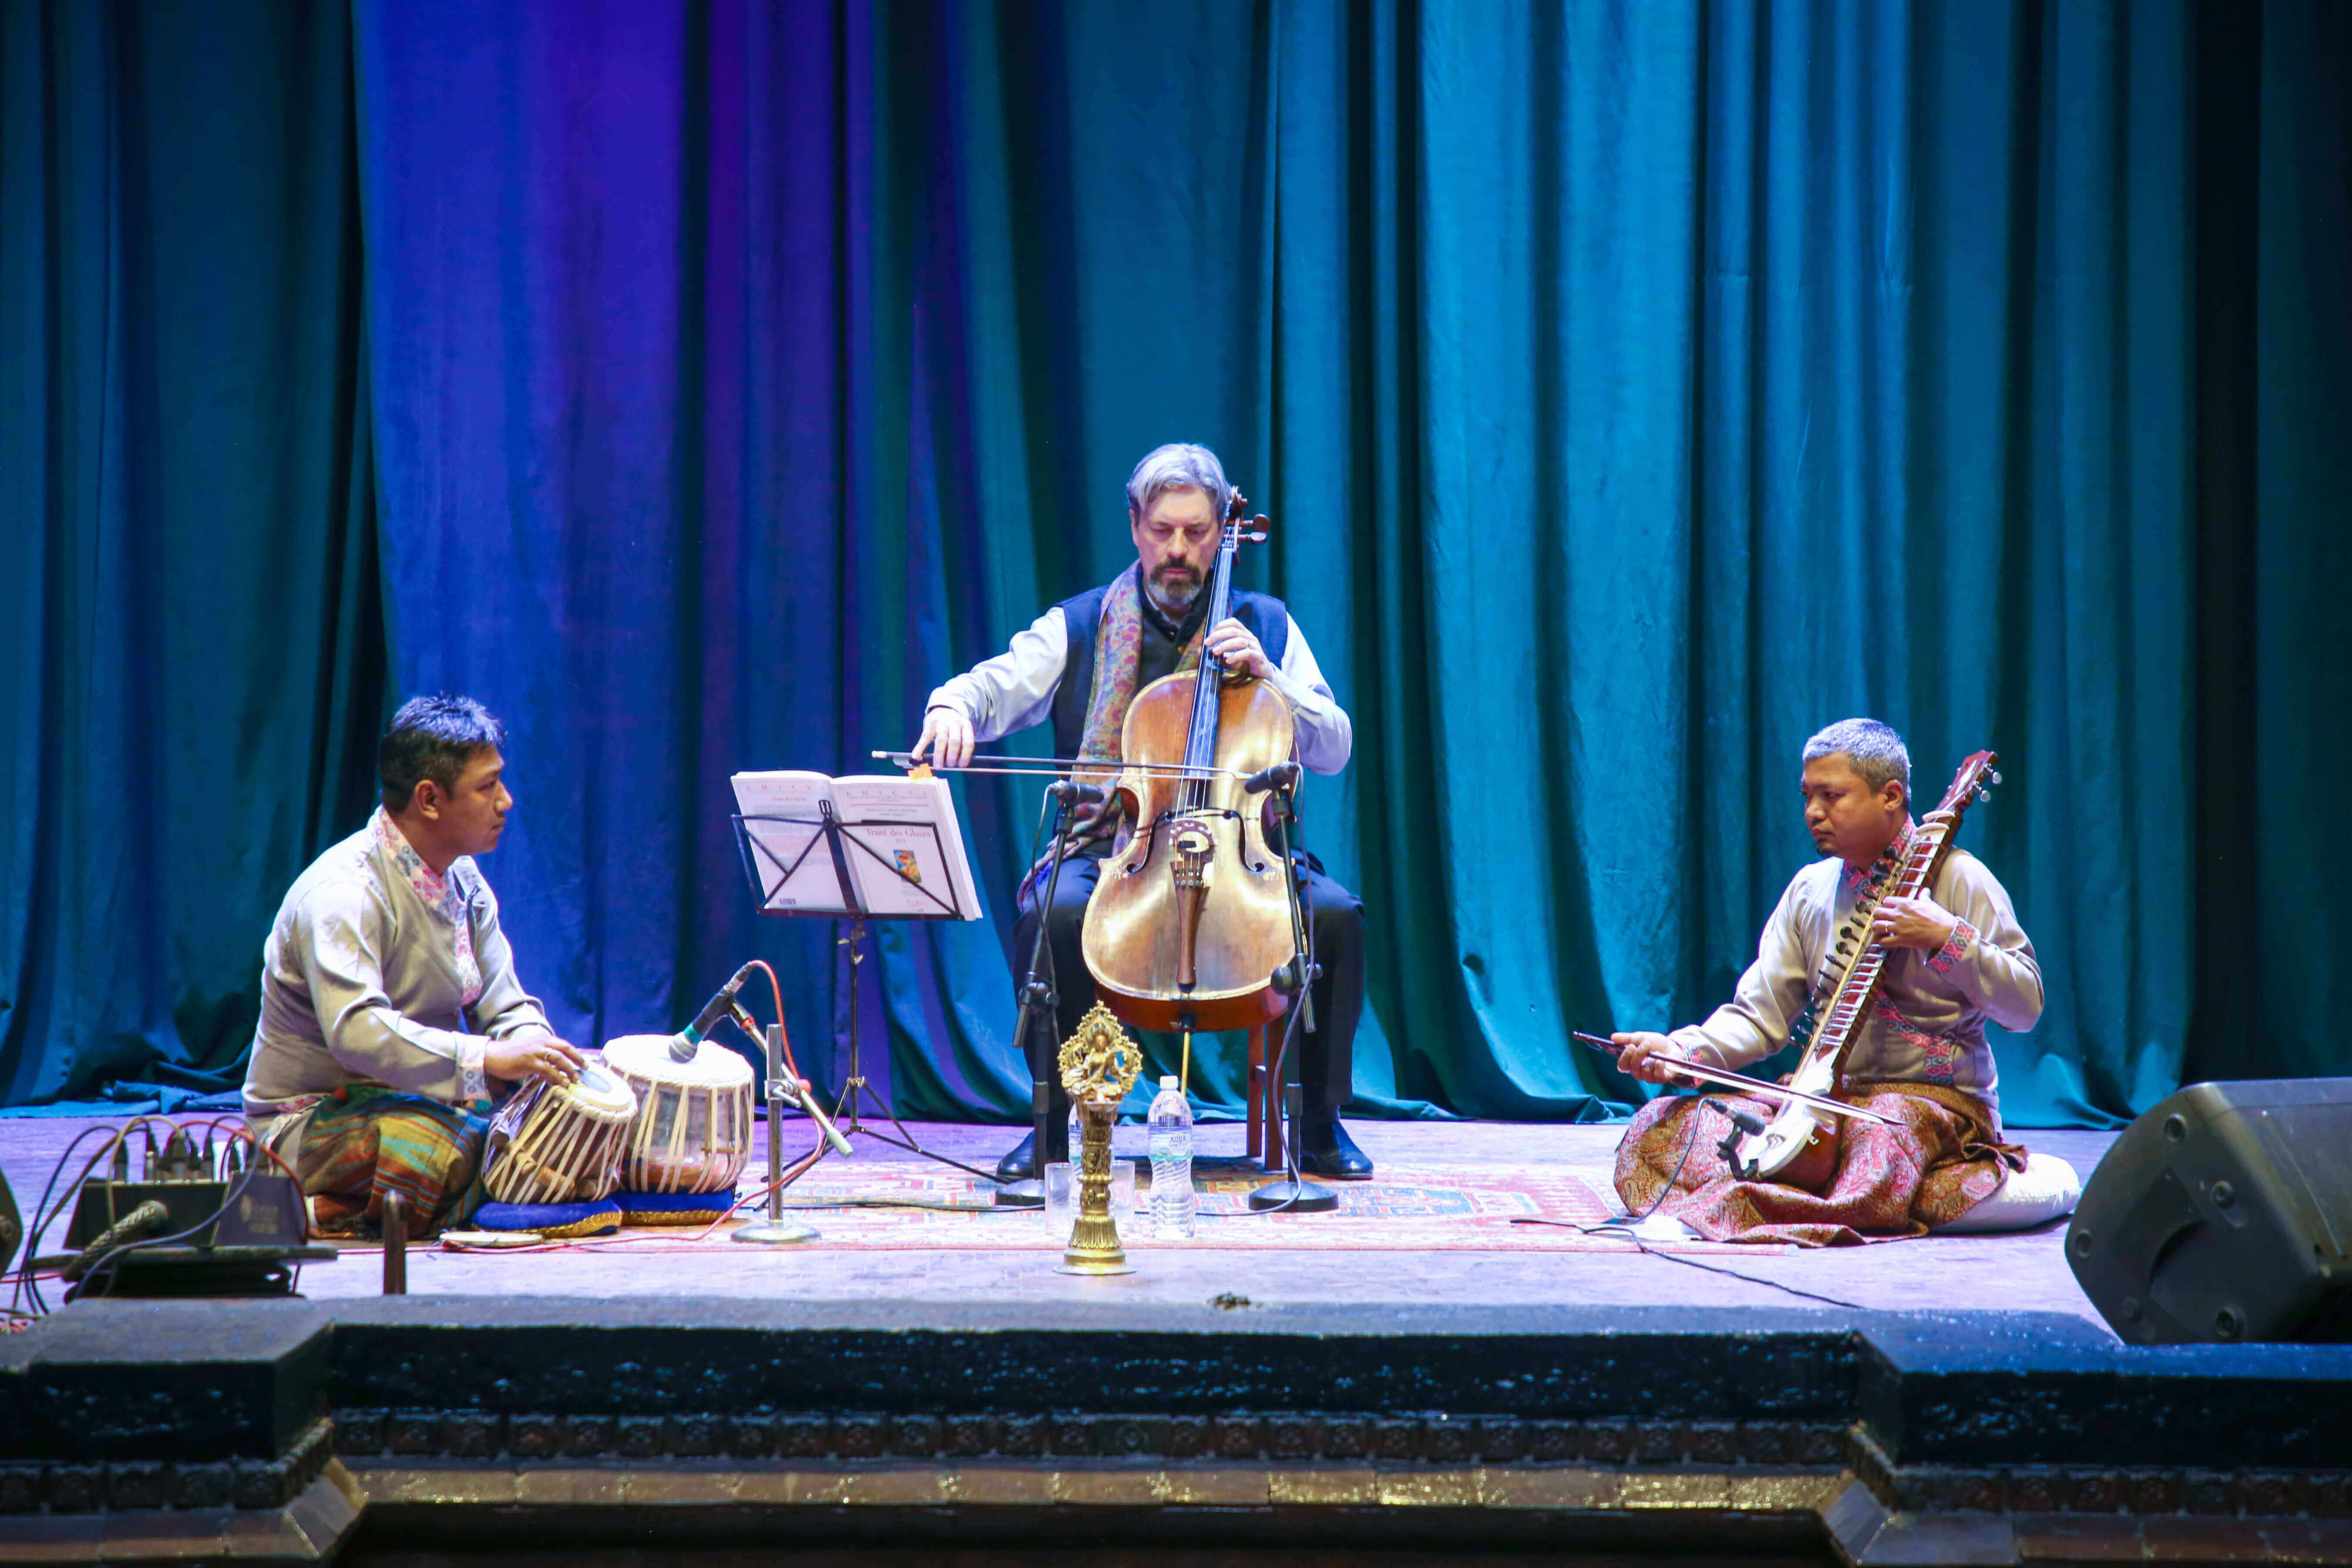 Artists from Singhini Consort perform during a function jointly organised by the French Embassy and the Ministry of Foreign Affairs on Saturday to mark the 70th anniversary of Nepal-France bilateral relations.